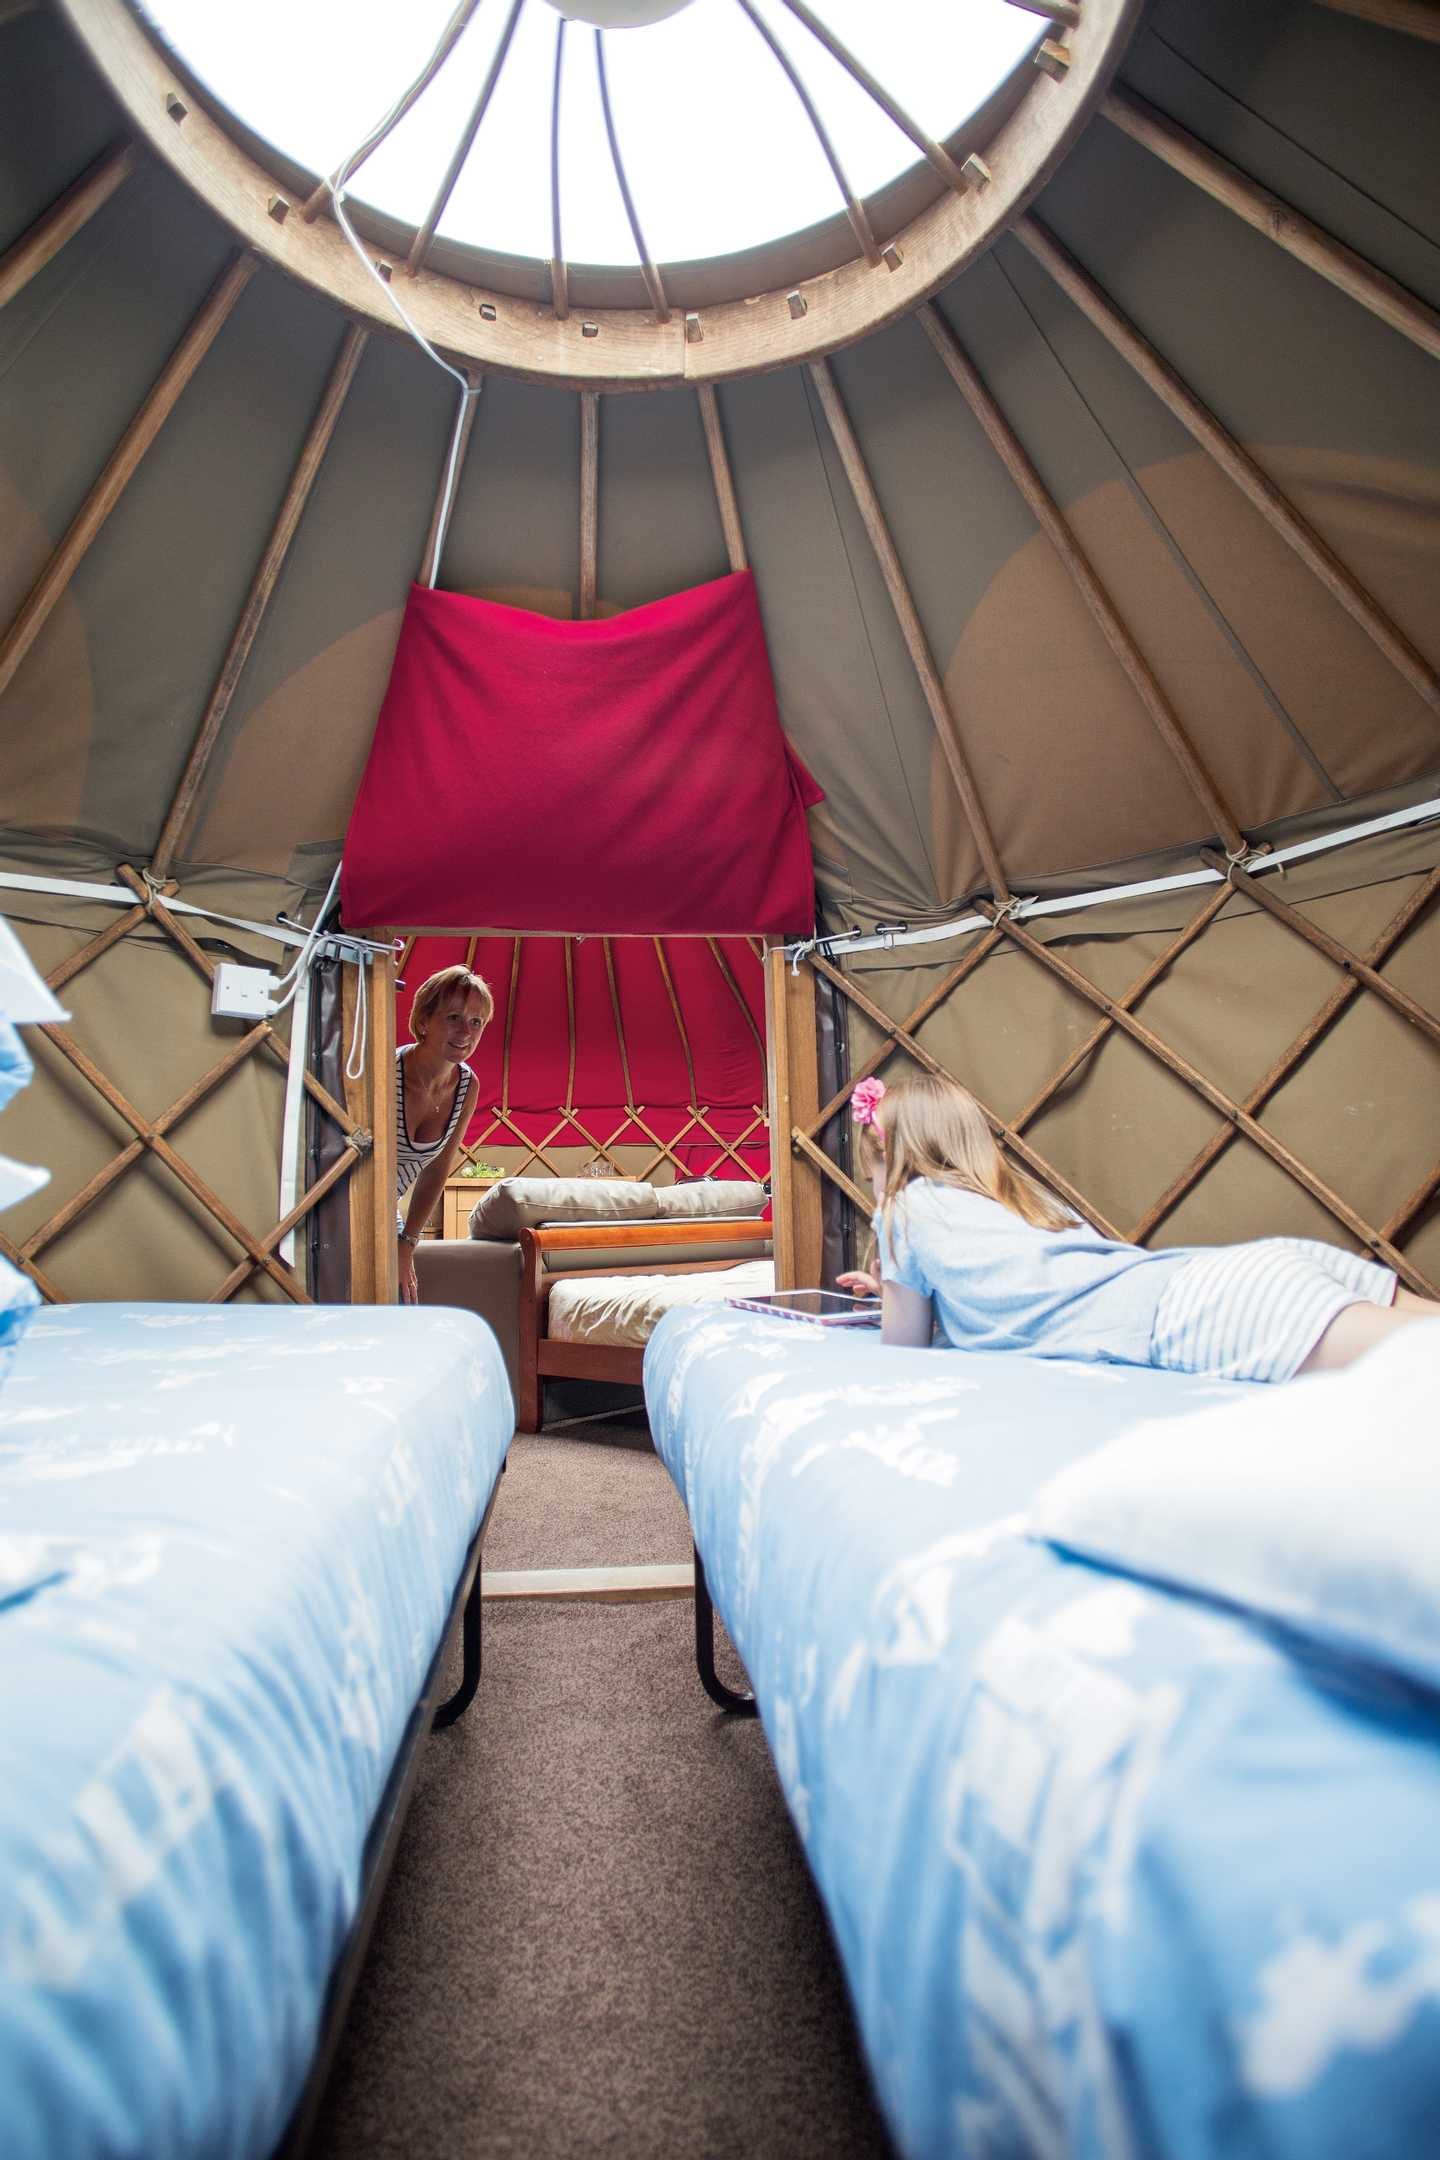 A girl laying down on a bed in a Yurt (exclusive to Perran Sands)